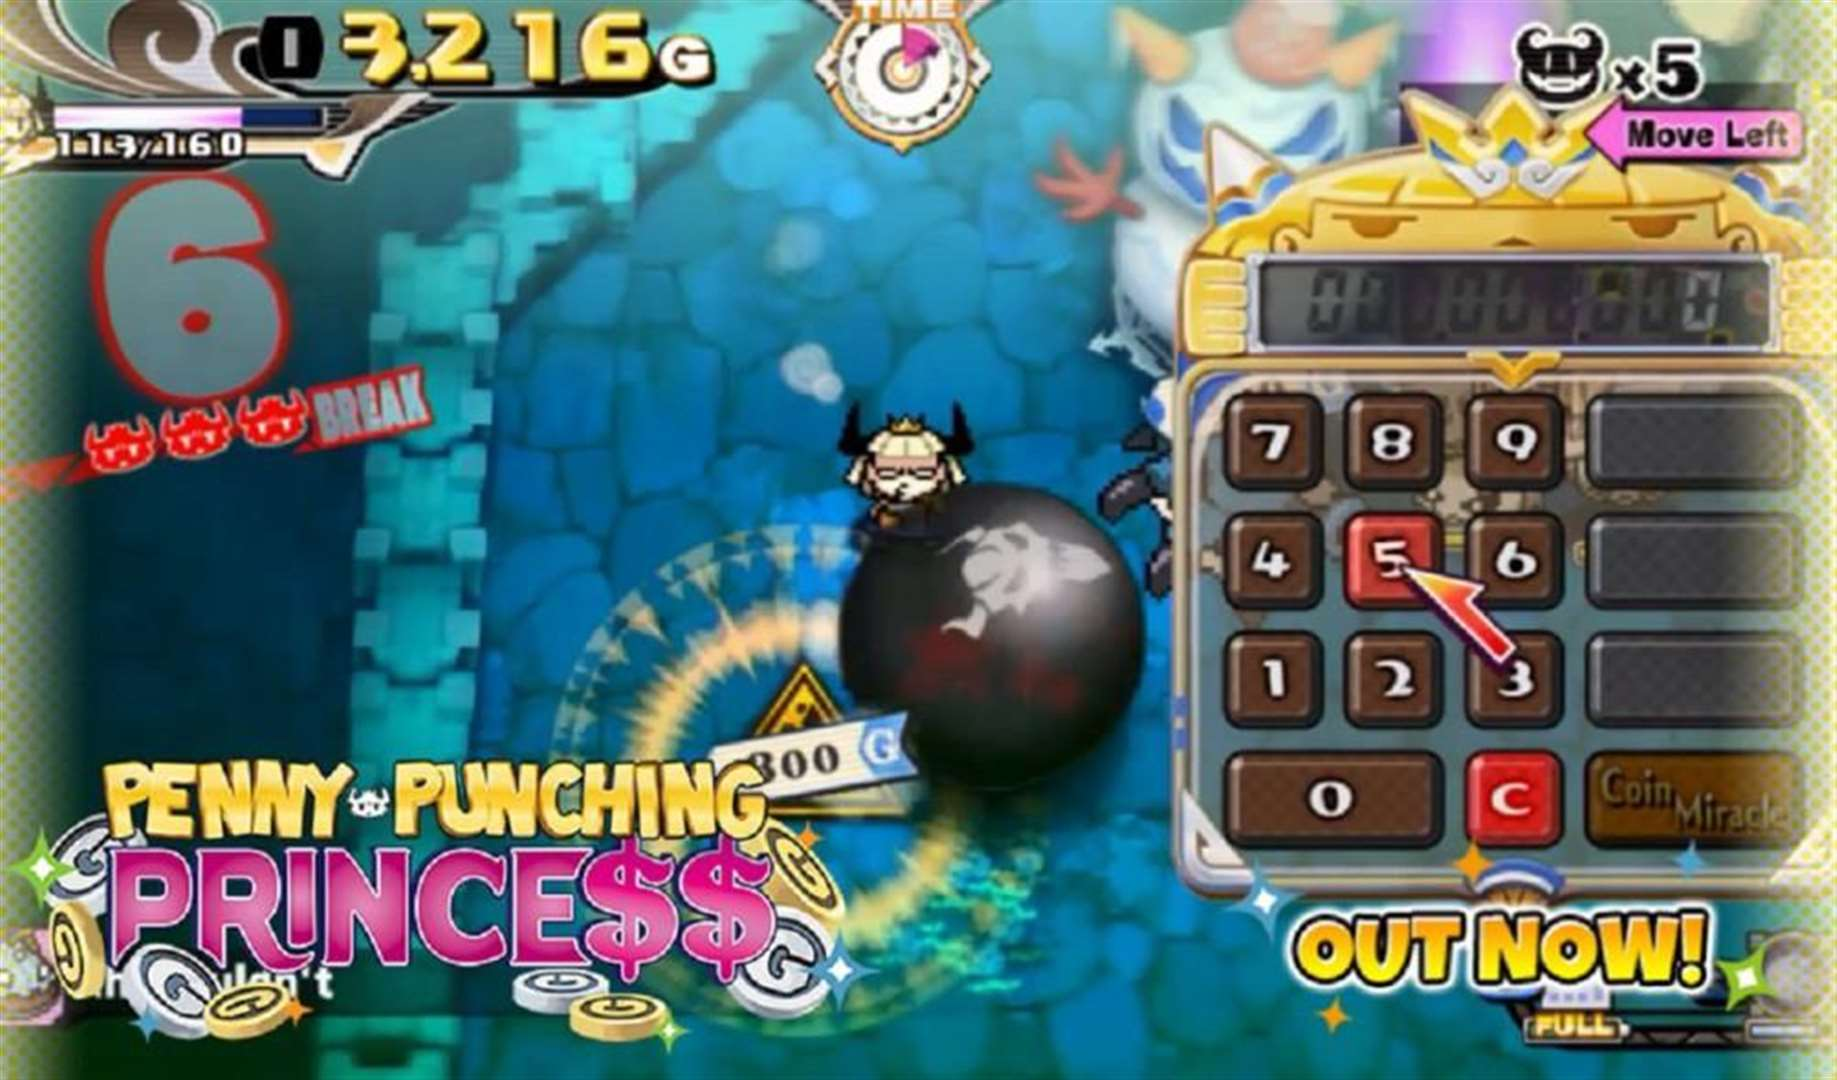 Console Corner: Penny Punching Princess Nintendo Switch review